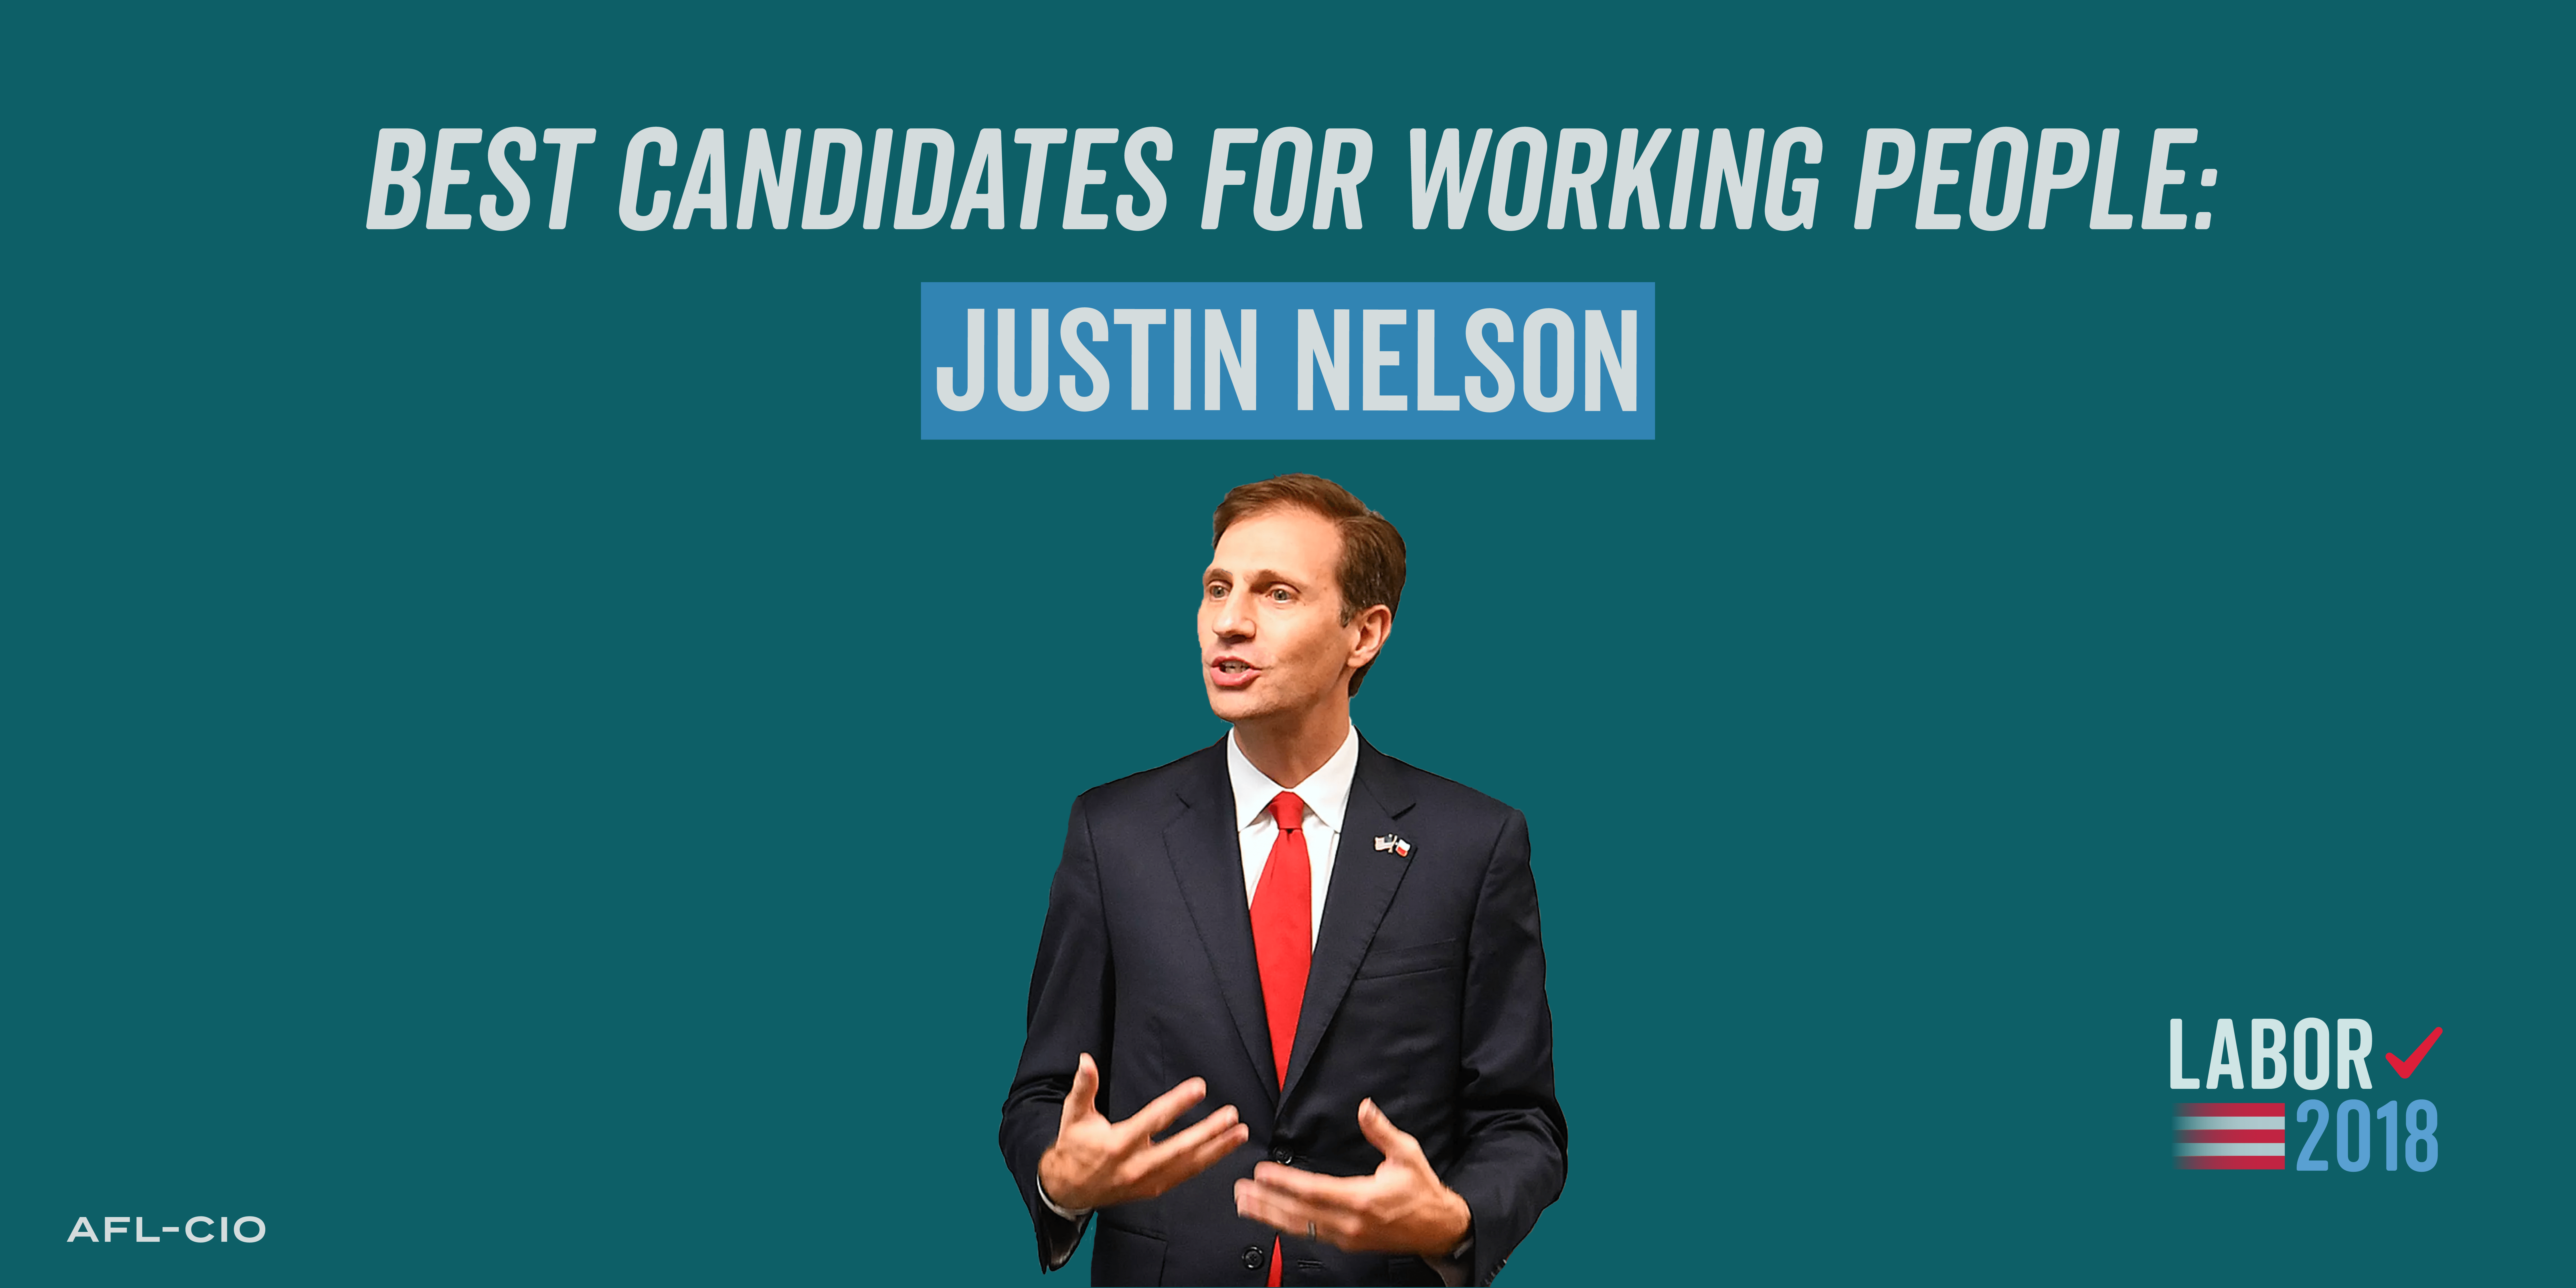 Best Candidates for Working People: Justin Nelson